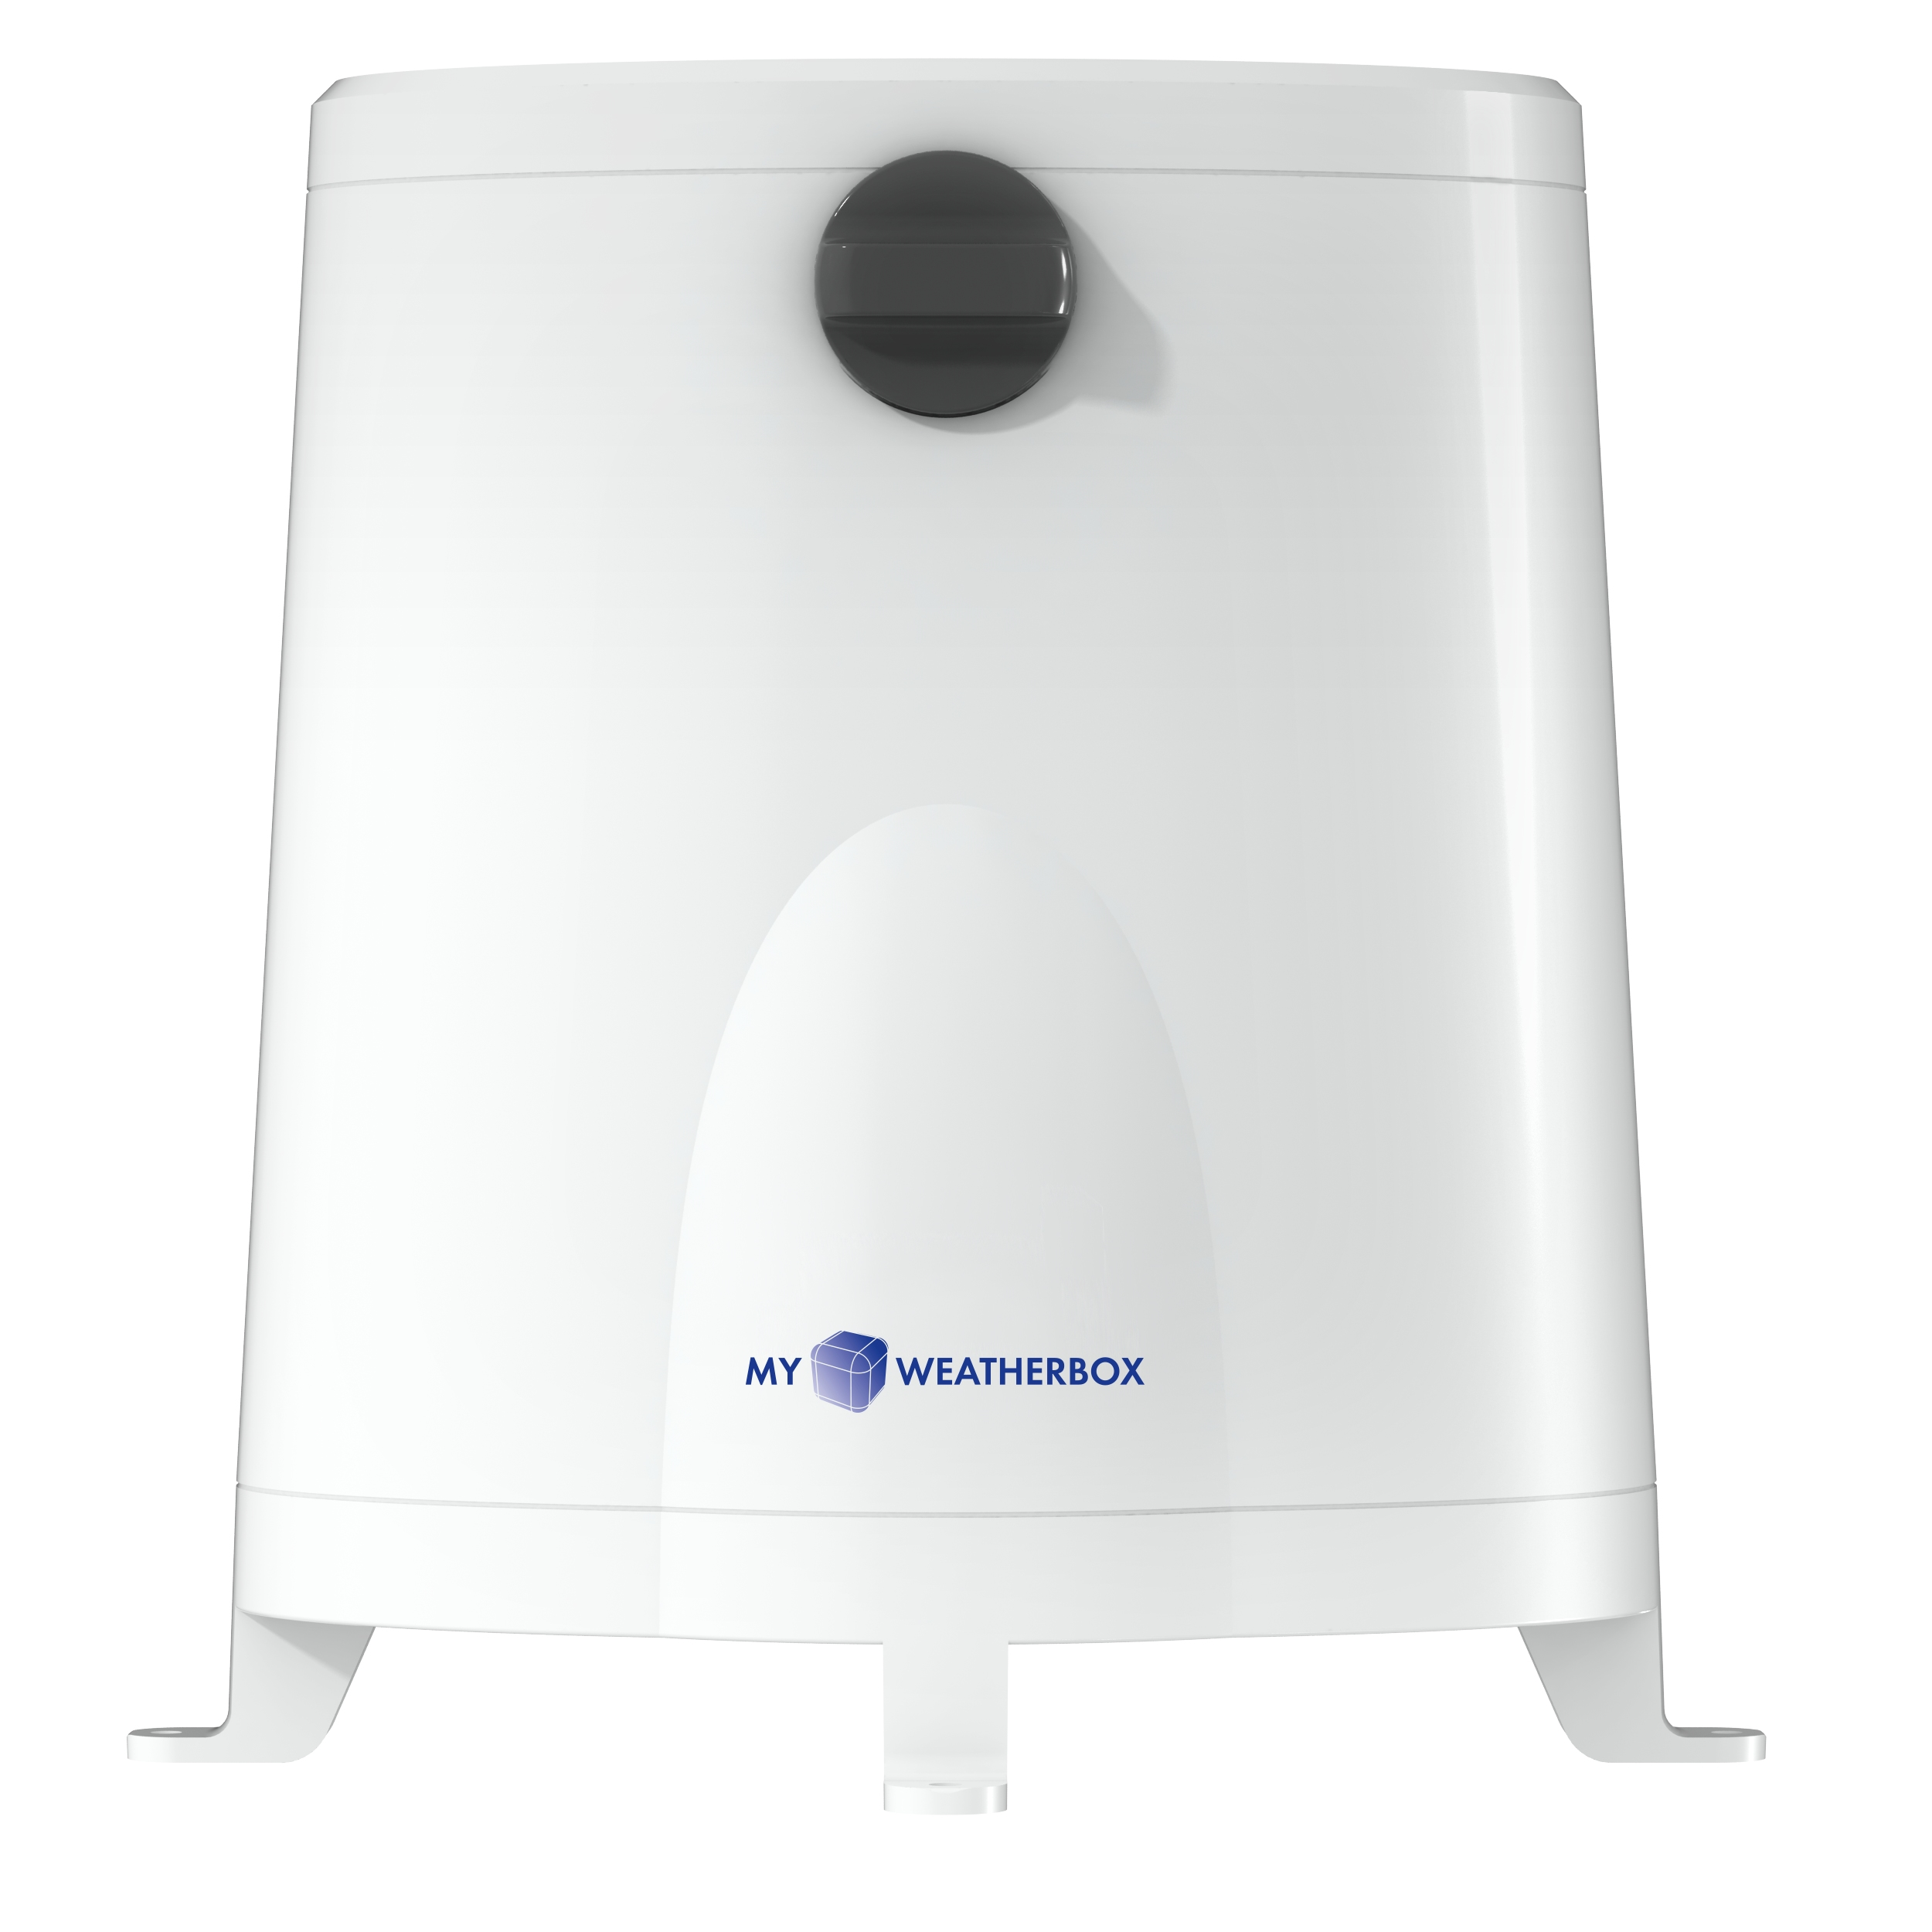 TF-35.1138.02  My Weatherbox Smart weerstation